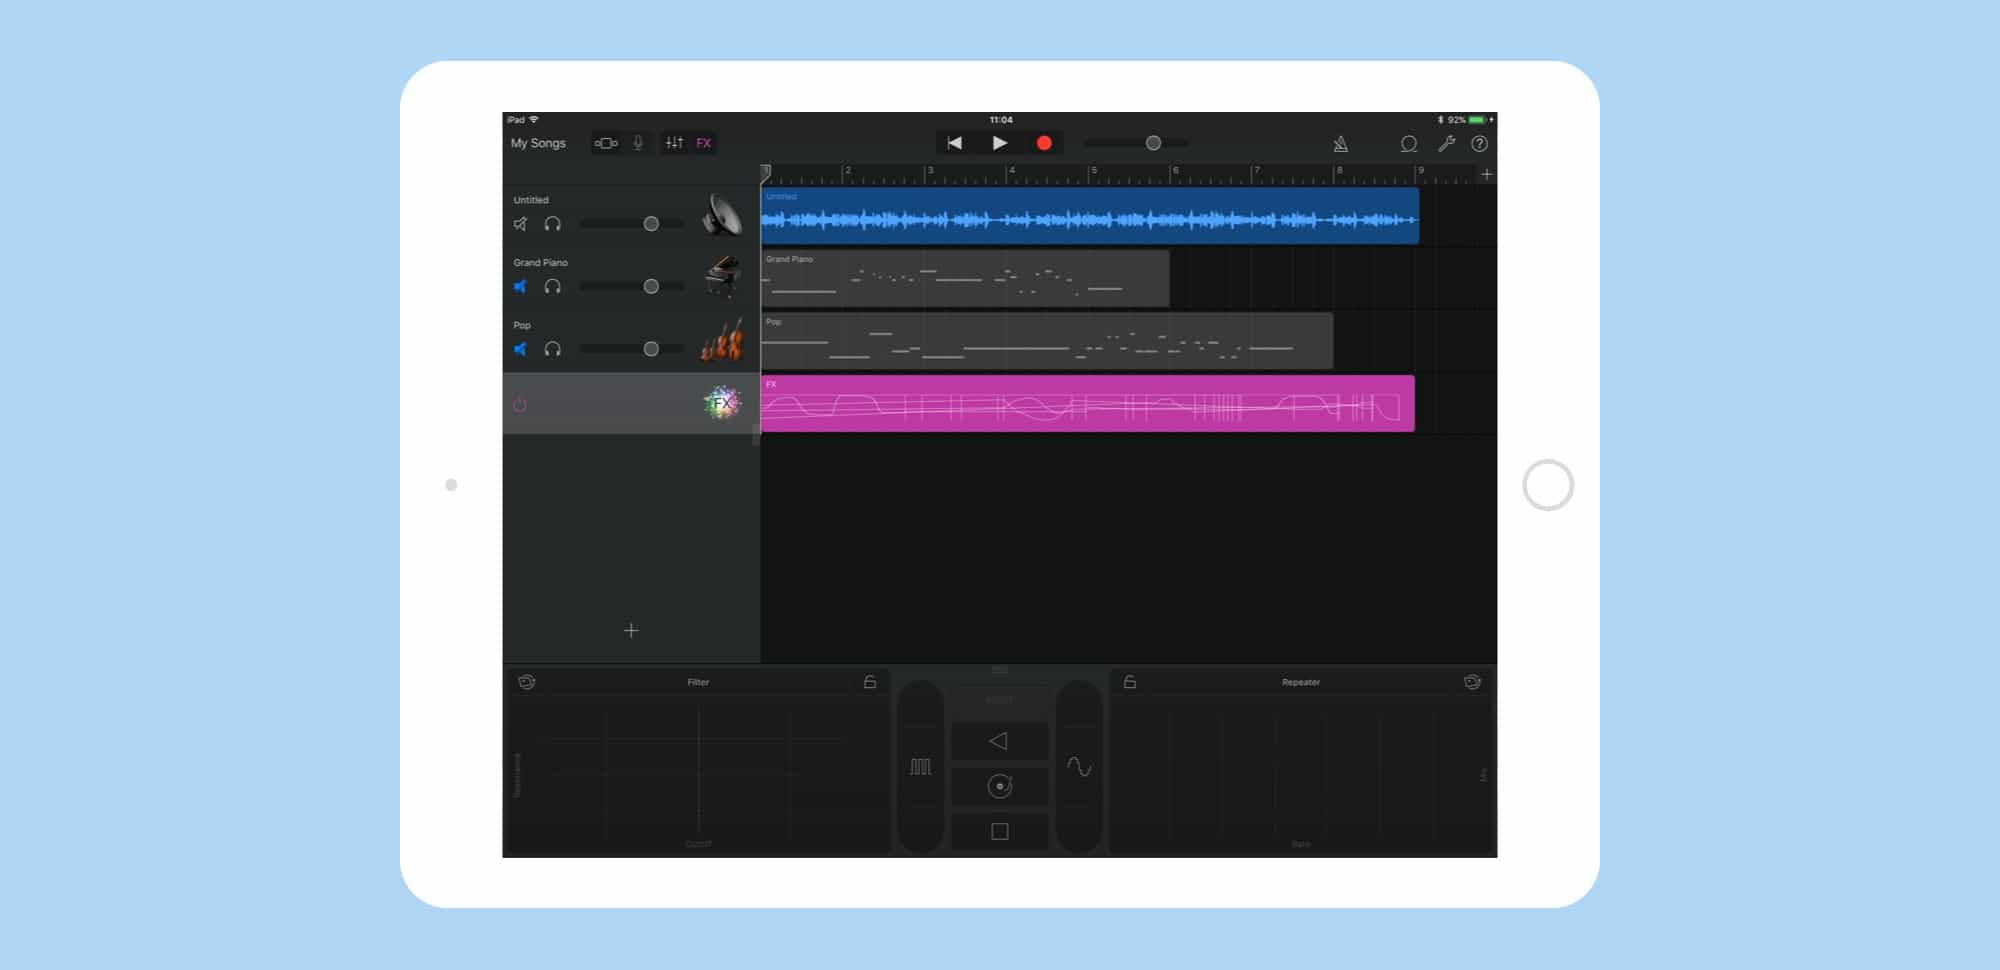 Remotely add tracks to a Mac GarageBand project with iOS.